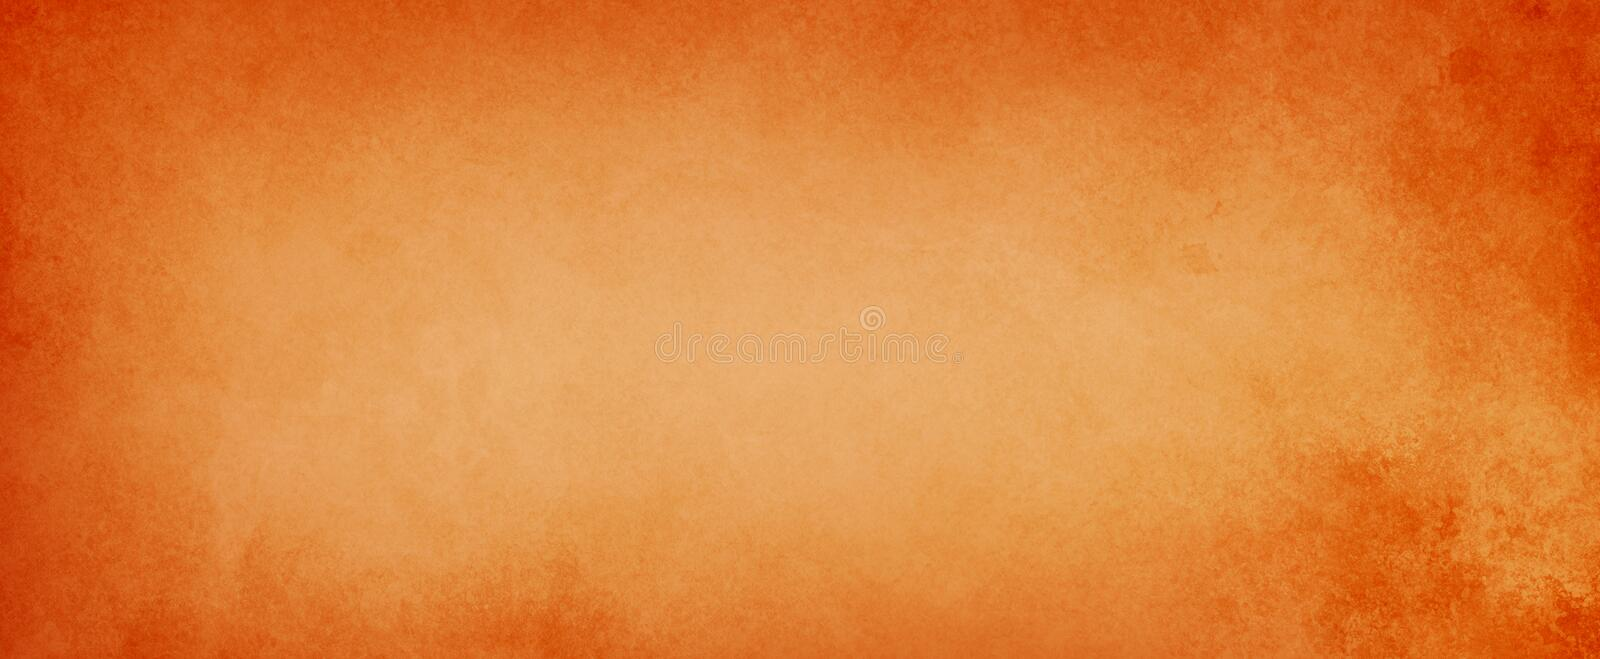 Orange and peach background with old distressed grunge textured borders in elegant vintage paper illustration royalty free stock image